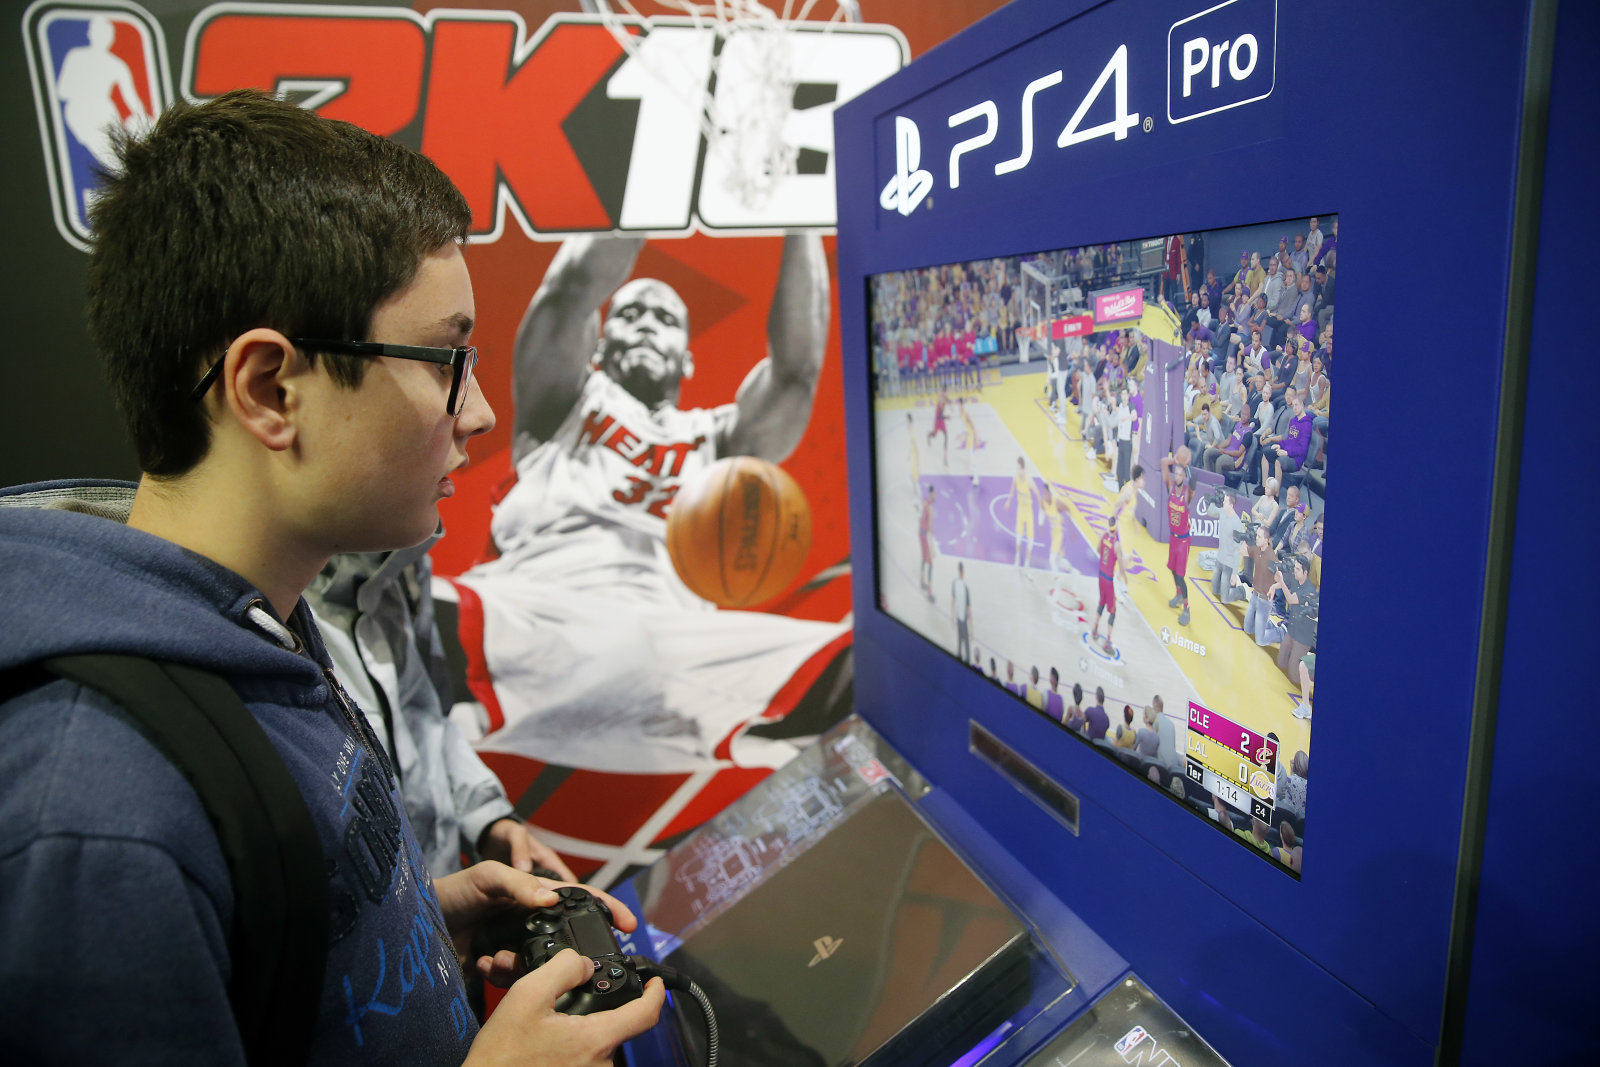 PARIS, FRANCE - NOVEMBER 01:  Gamers play the video game 'NBA 2K18' developed by Visual Concepts and published by 2K Sports on Sony PlayStation game consoles PS4 Pro during the 'Paris Games Week' on November 01, 2017 in Paris, France. 'Paris Games Week' is an international trade fair for video games to be held from October 31 to November 5, 2017.  (Photo by Chesnot/Getty Images)